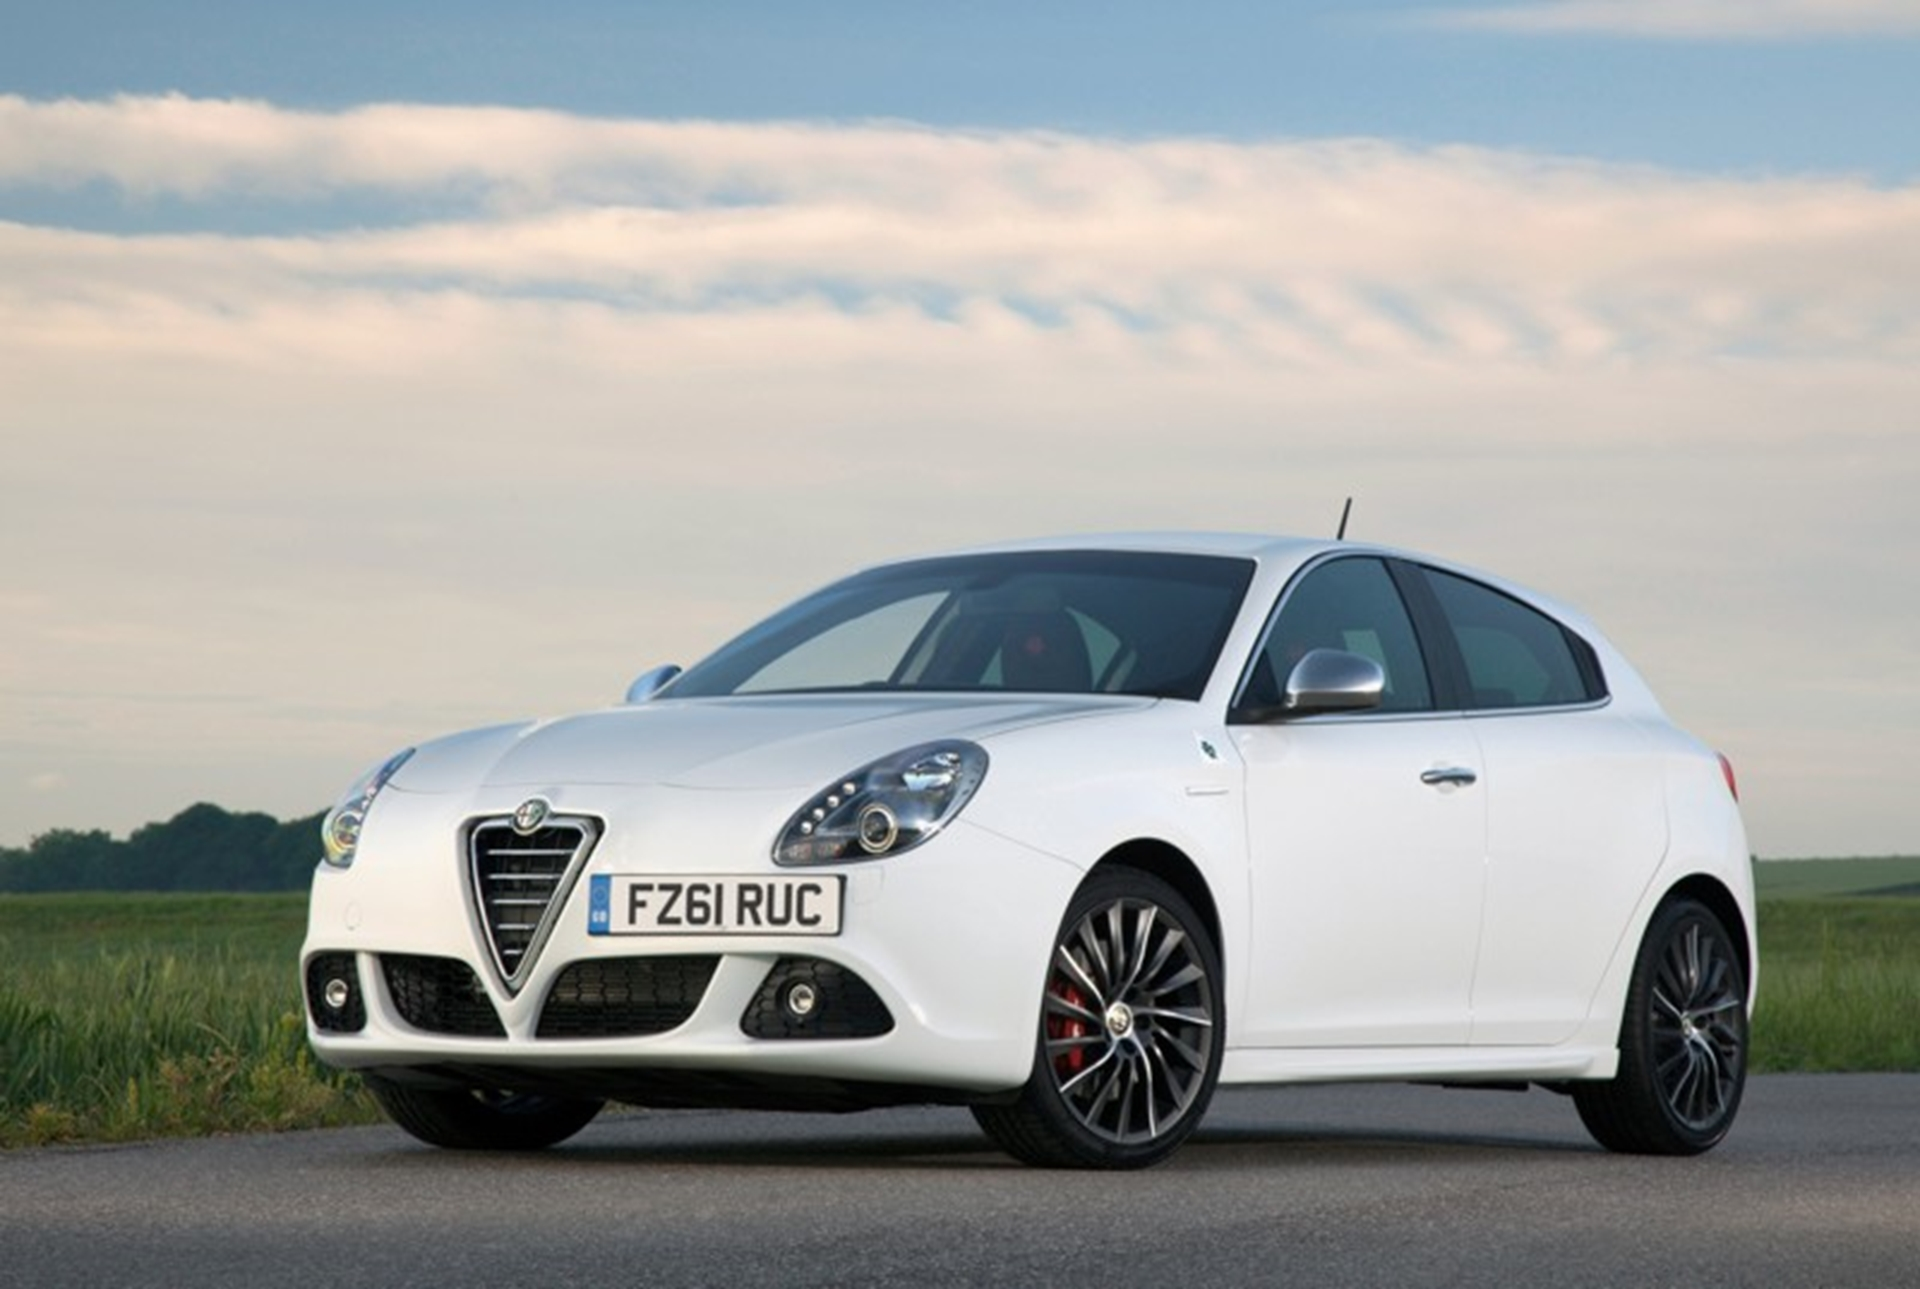 Alfa Romeo Uk Records Highest Yearly Sales Figure Since 2002